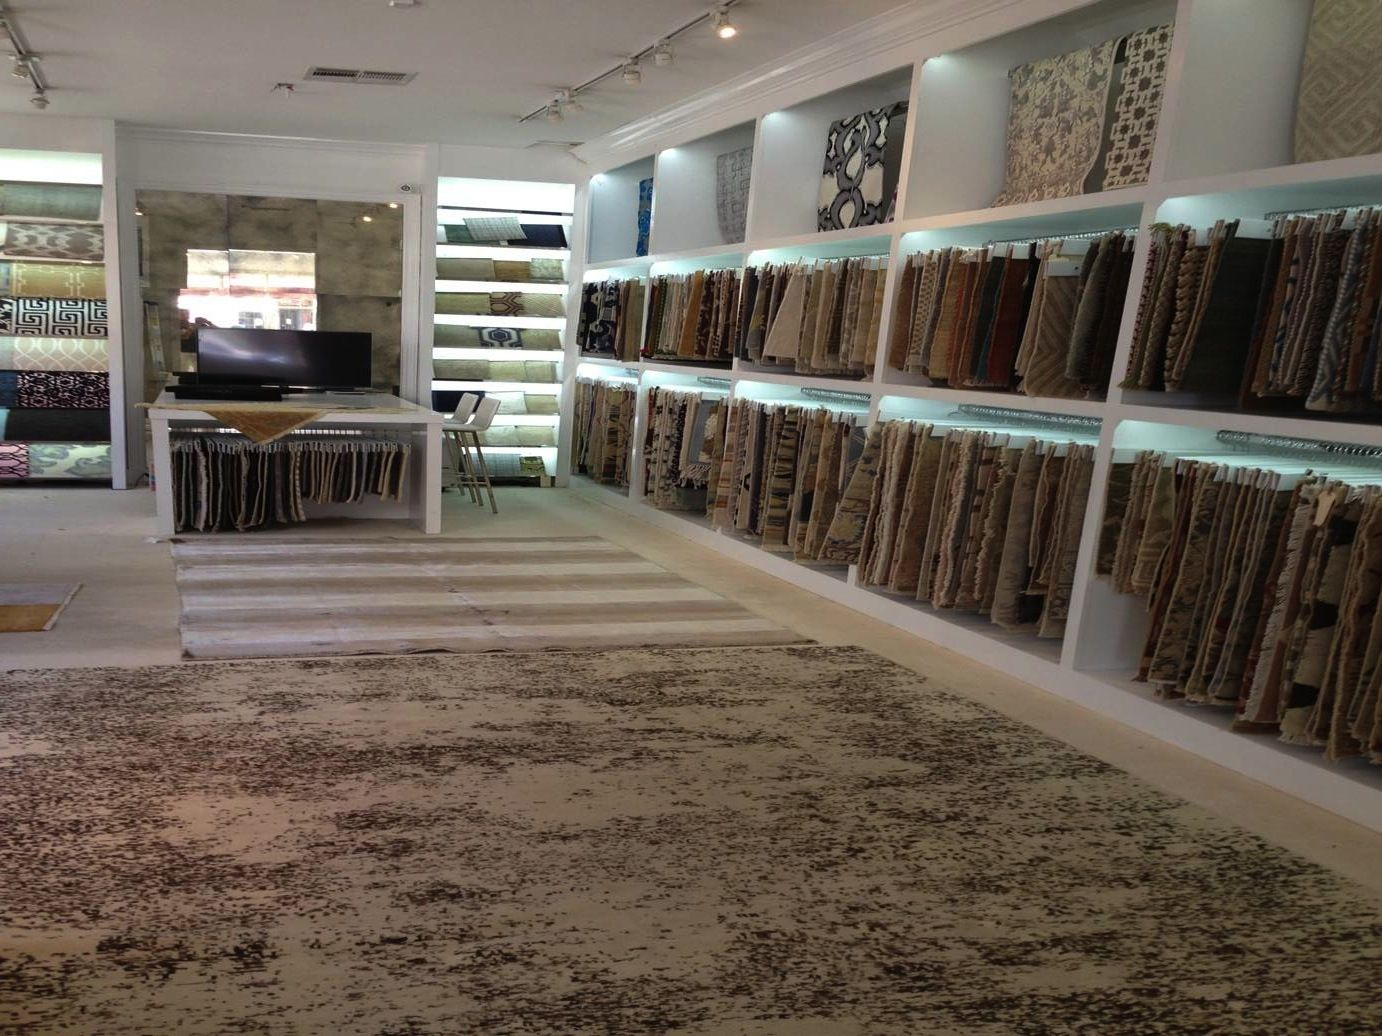 J d staron opens new showroom in la cover magazine for Showroom flooring ideas